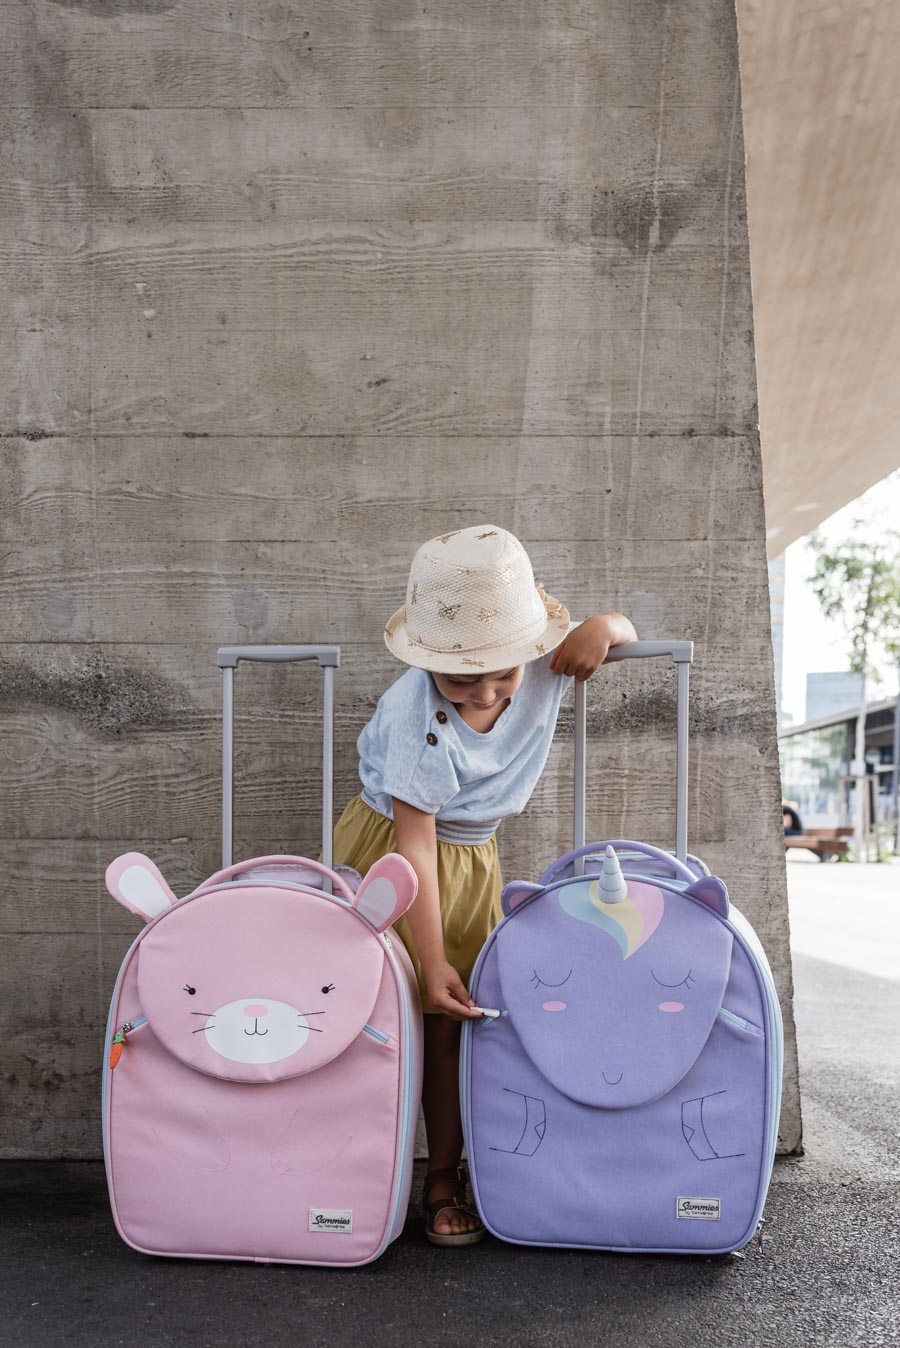 Loved things for the holidays: We pack these children's things in the suitcase #holidaywithchildren #holidaywithchildren #familyholiday #familyferien #familytime